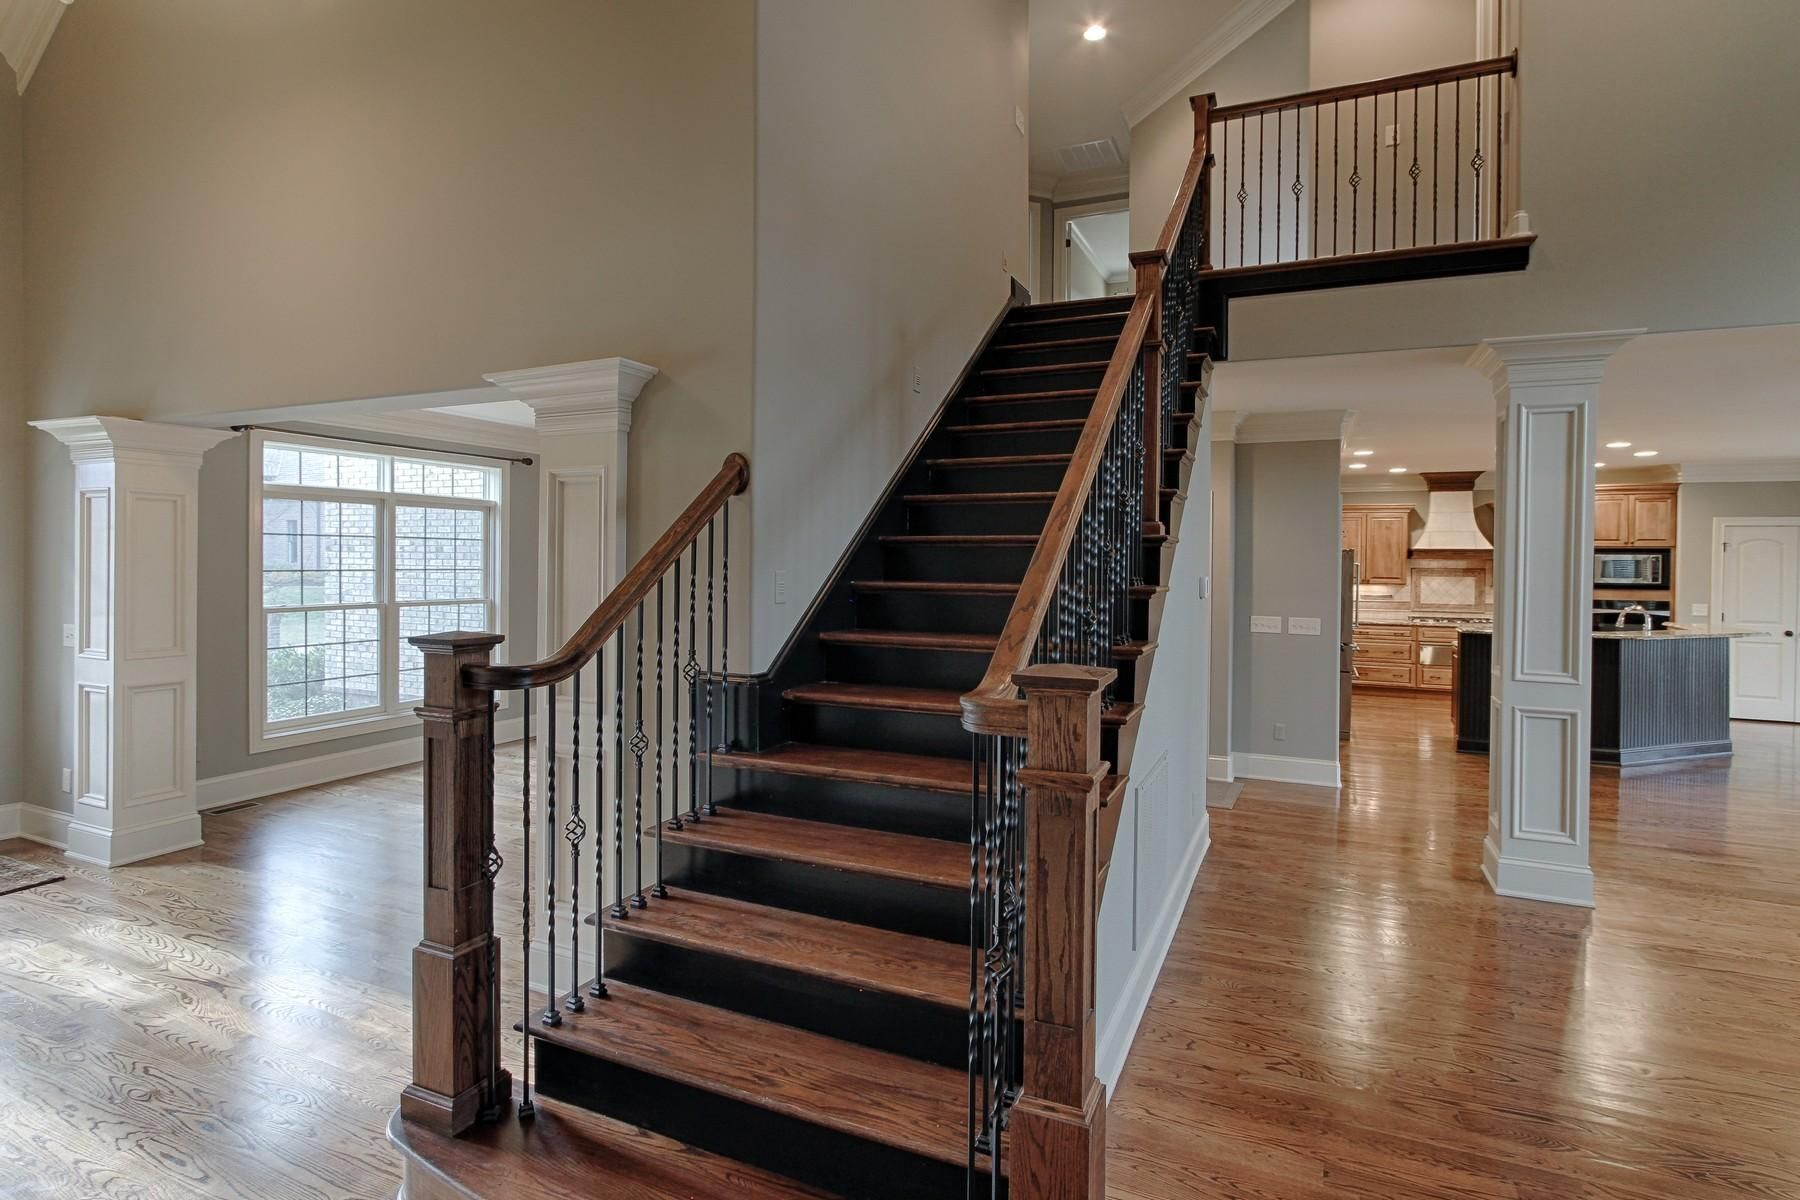 Let's take a look upstairs